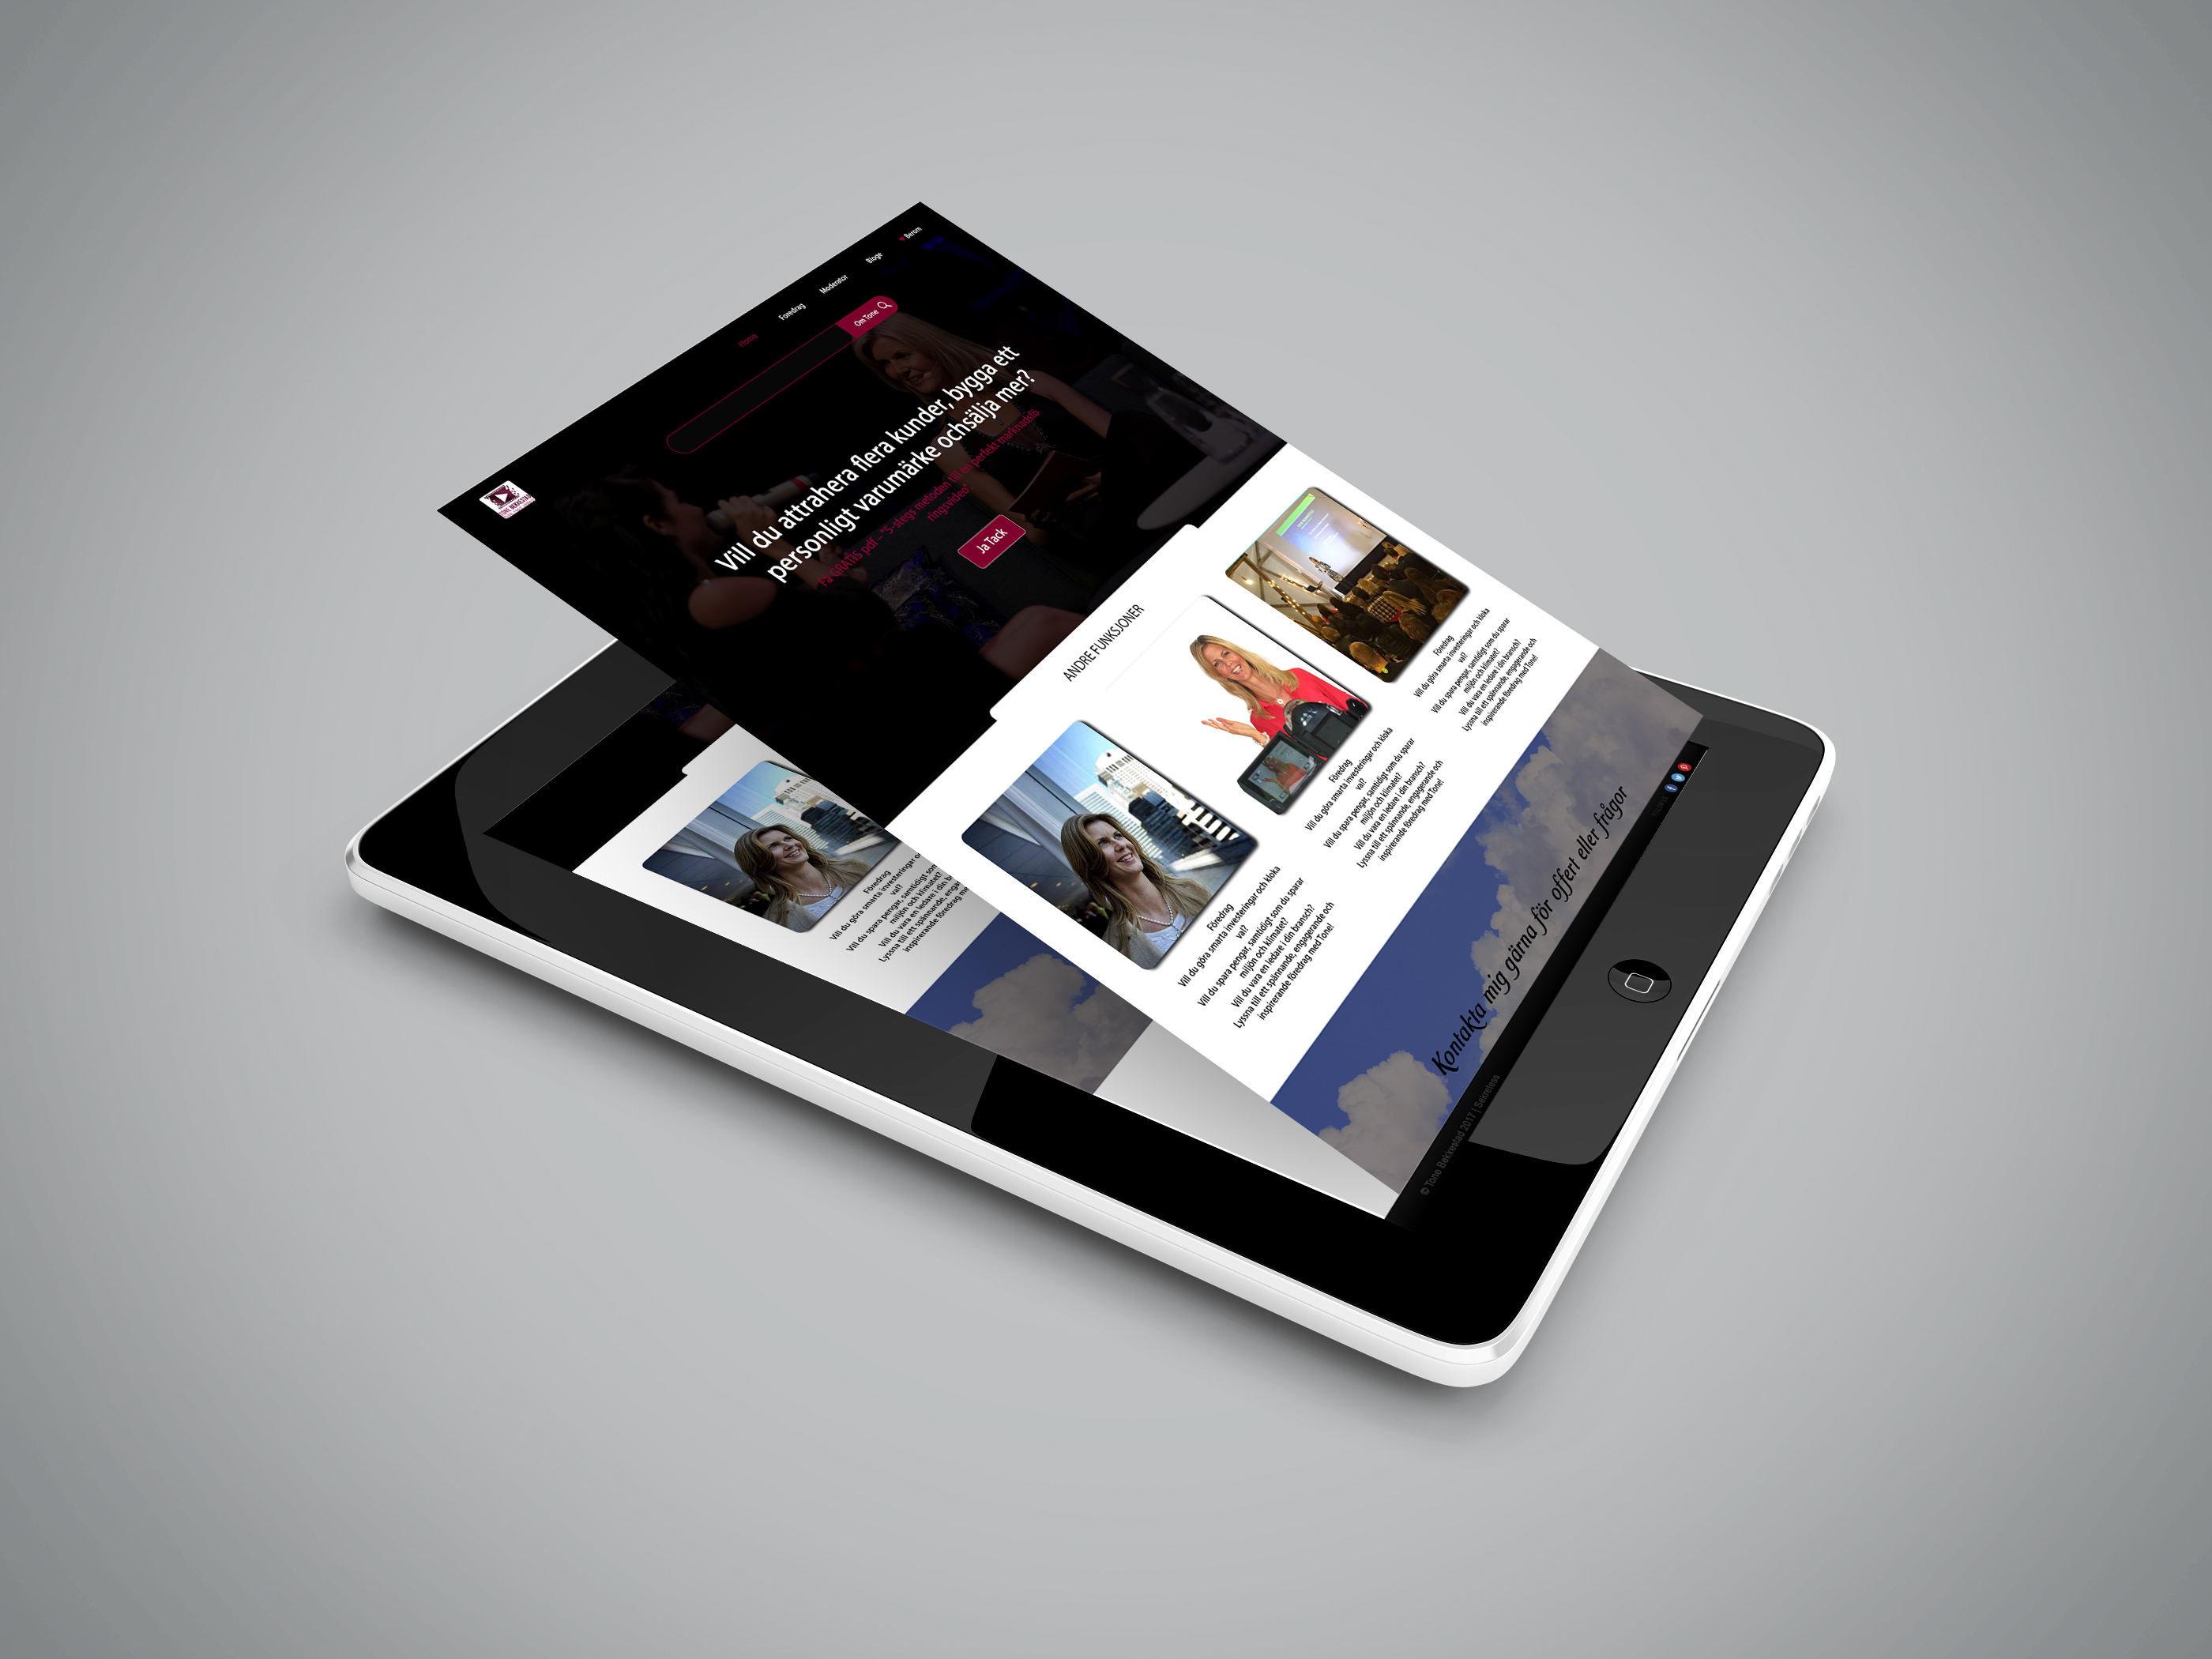 I Want to Design Your Website Mockup